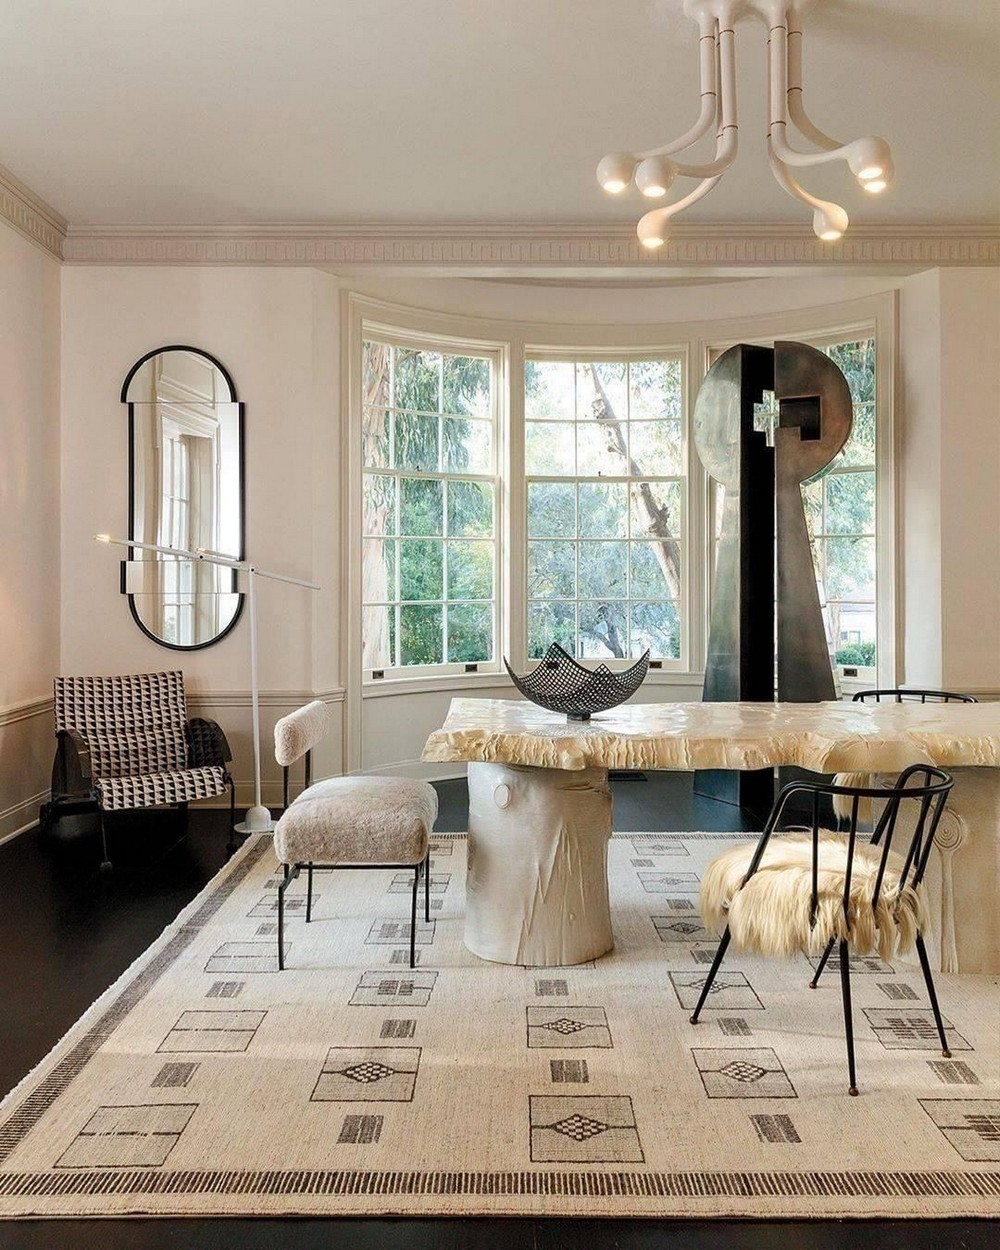 The Best Dining Room Designs You Will Find On Instagram dining room designs The Best Dining Room Designs You Will Find On Instagram kelly weratsler